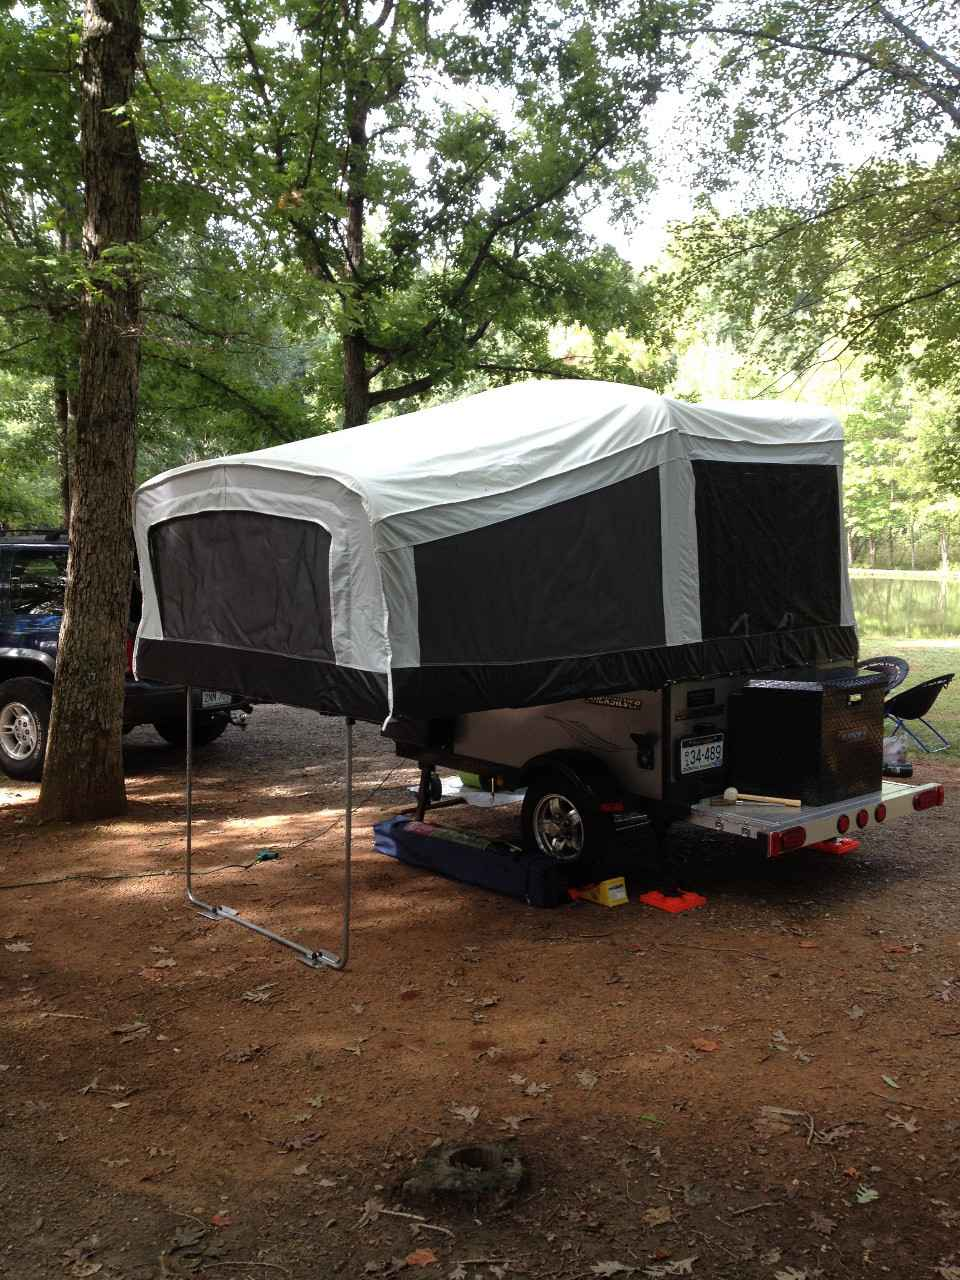 2015 Used Livin Lite Quicksilver 6 0 Pop Up Camper In